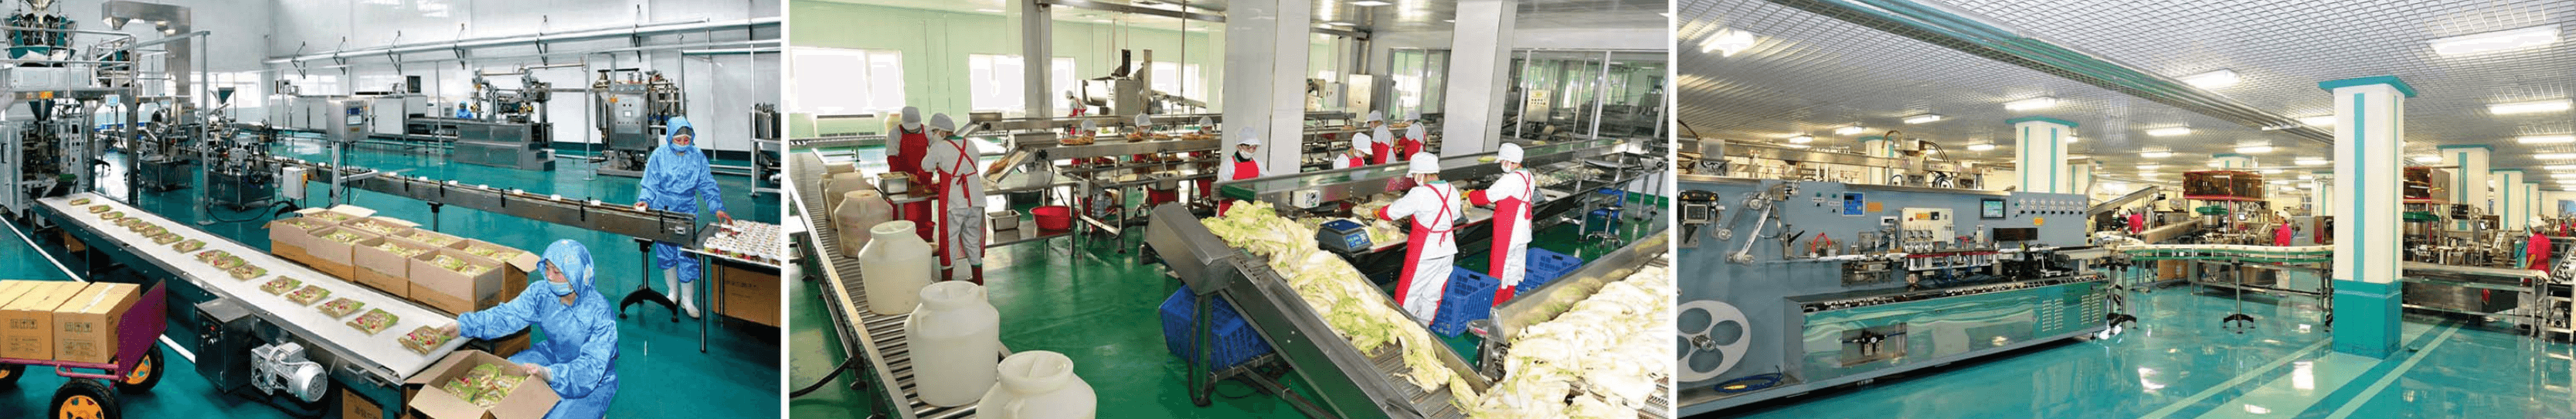 Sci-tech achievements of the institute contribute to modernizing production processes and improving quality of products at the Taedonggang General Fruit Processing Factory, Ryugyong Kimchi Factory and other factories